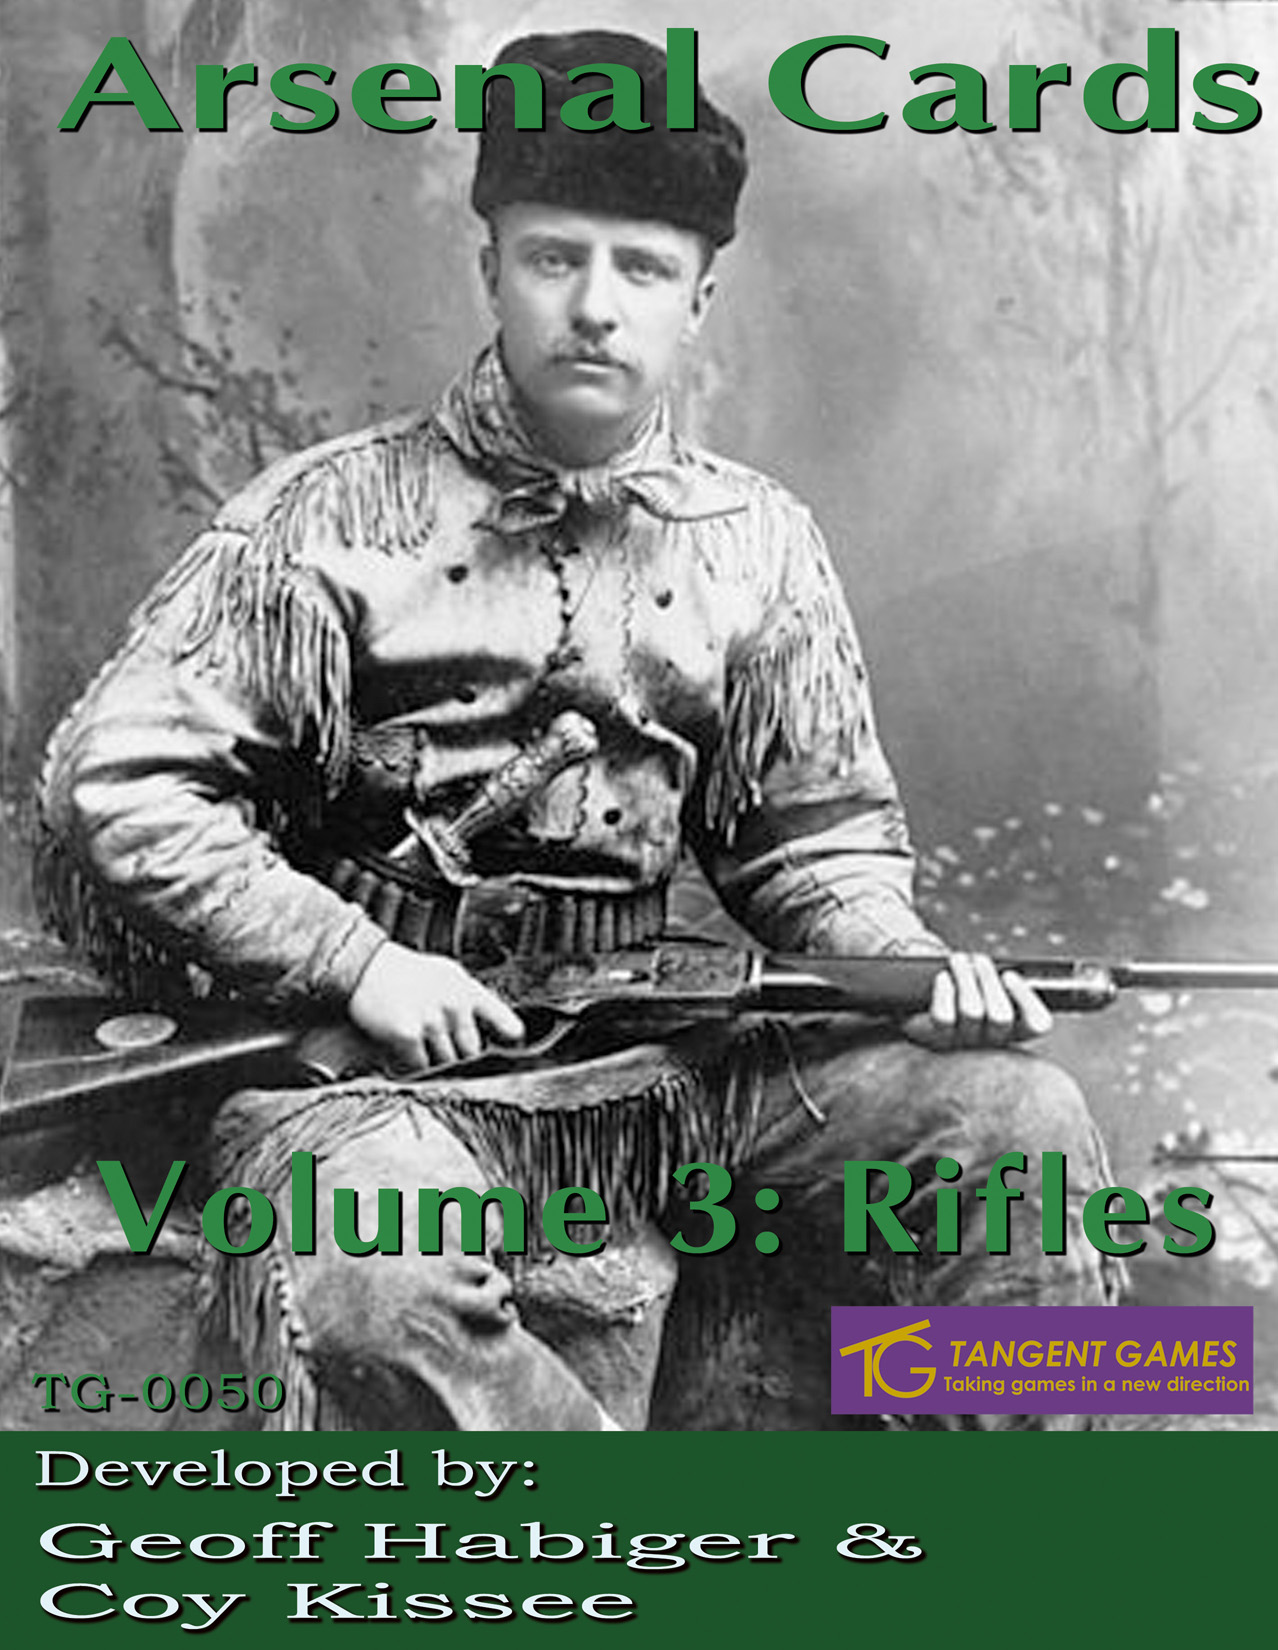 Arsenal Cards: Vol 3: Rifles